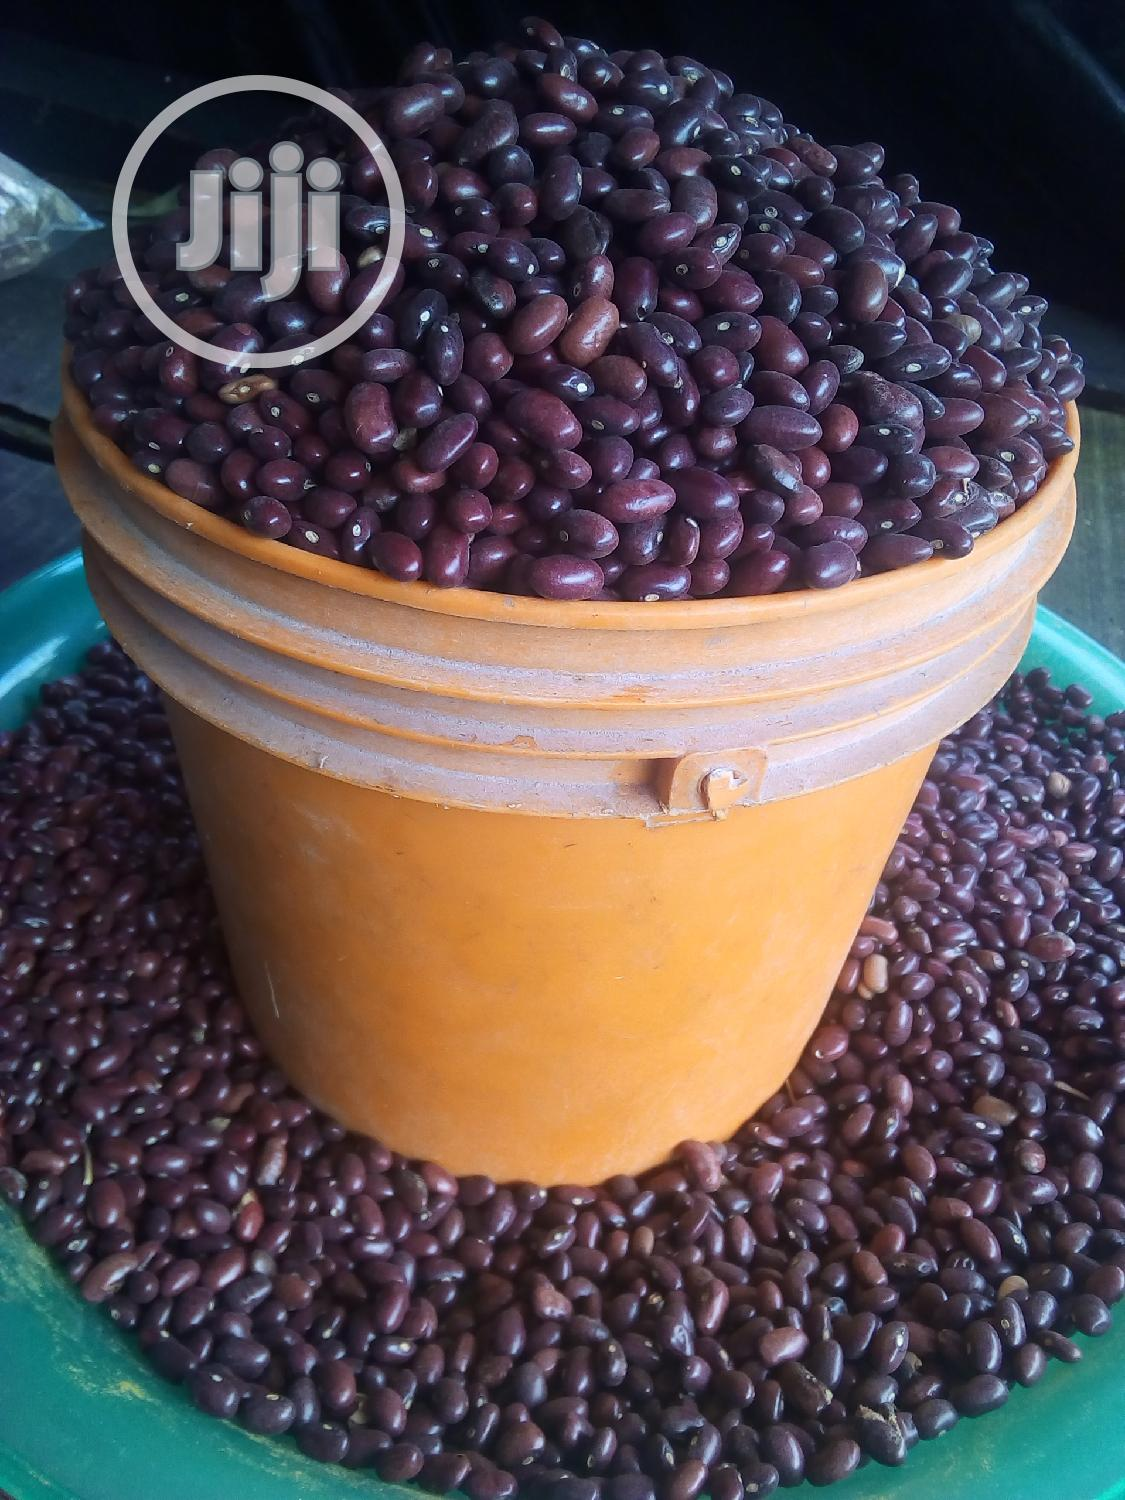 Red Kidney Beans In Port Harcourt Meals Drinks Chinaka Kenneth Jiji Ng For Sale In Port Harcourt Buy Meals Drinks From Chinaka Kenneth On Jiji Ng